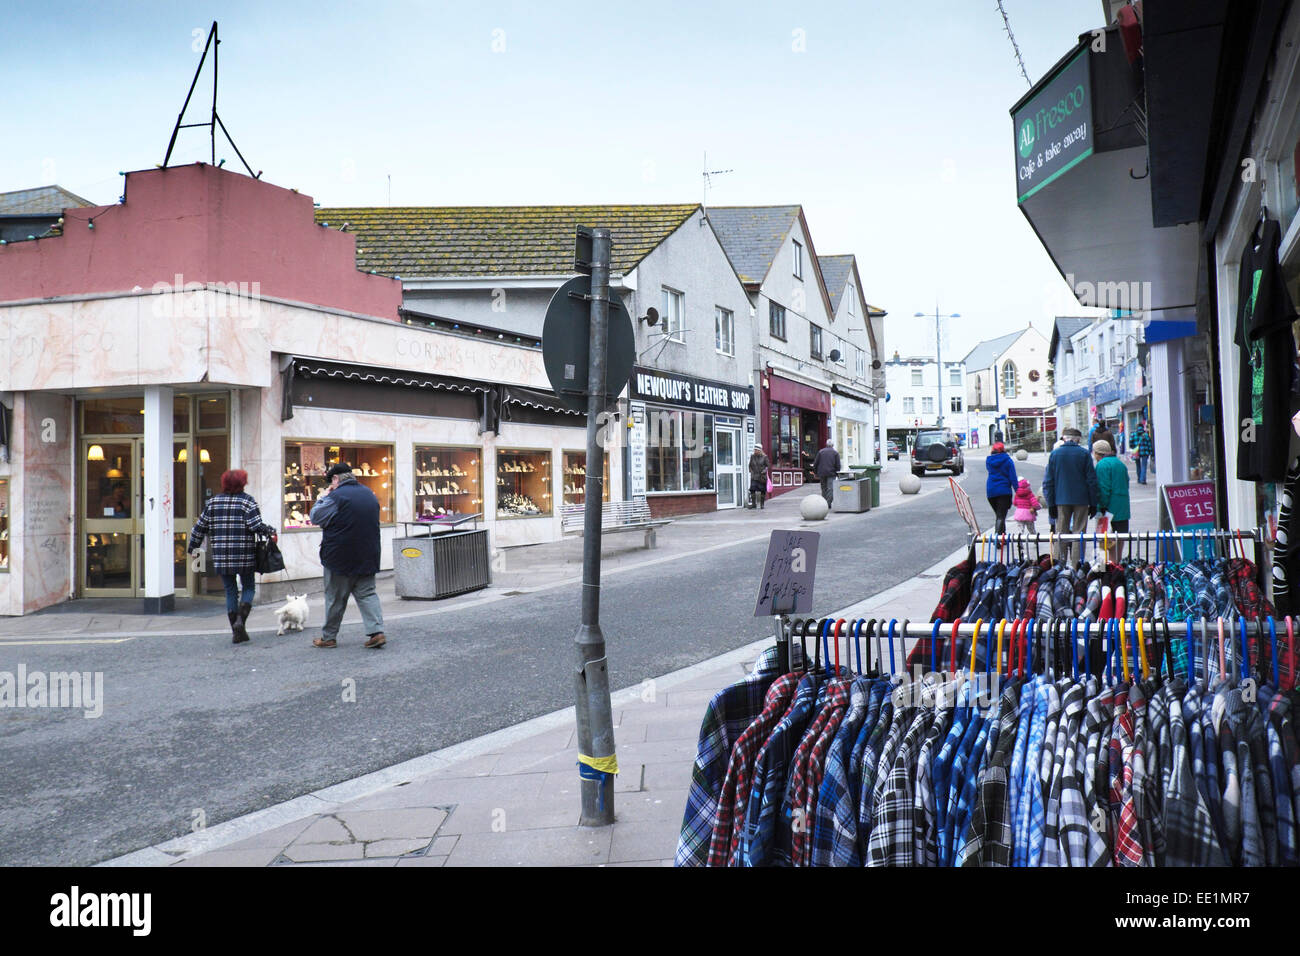 A cold winter's day in Newquay. - Stock Image